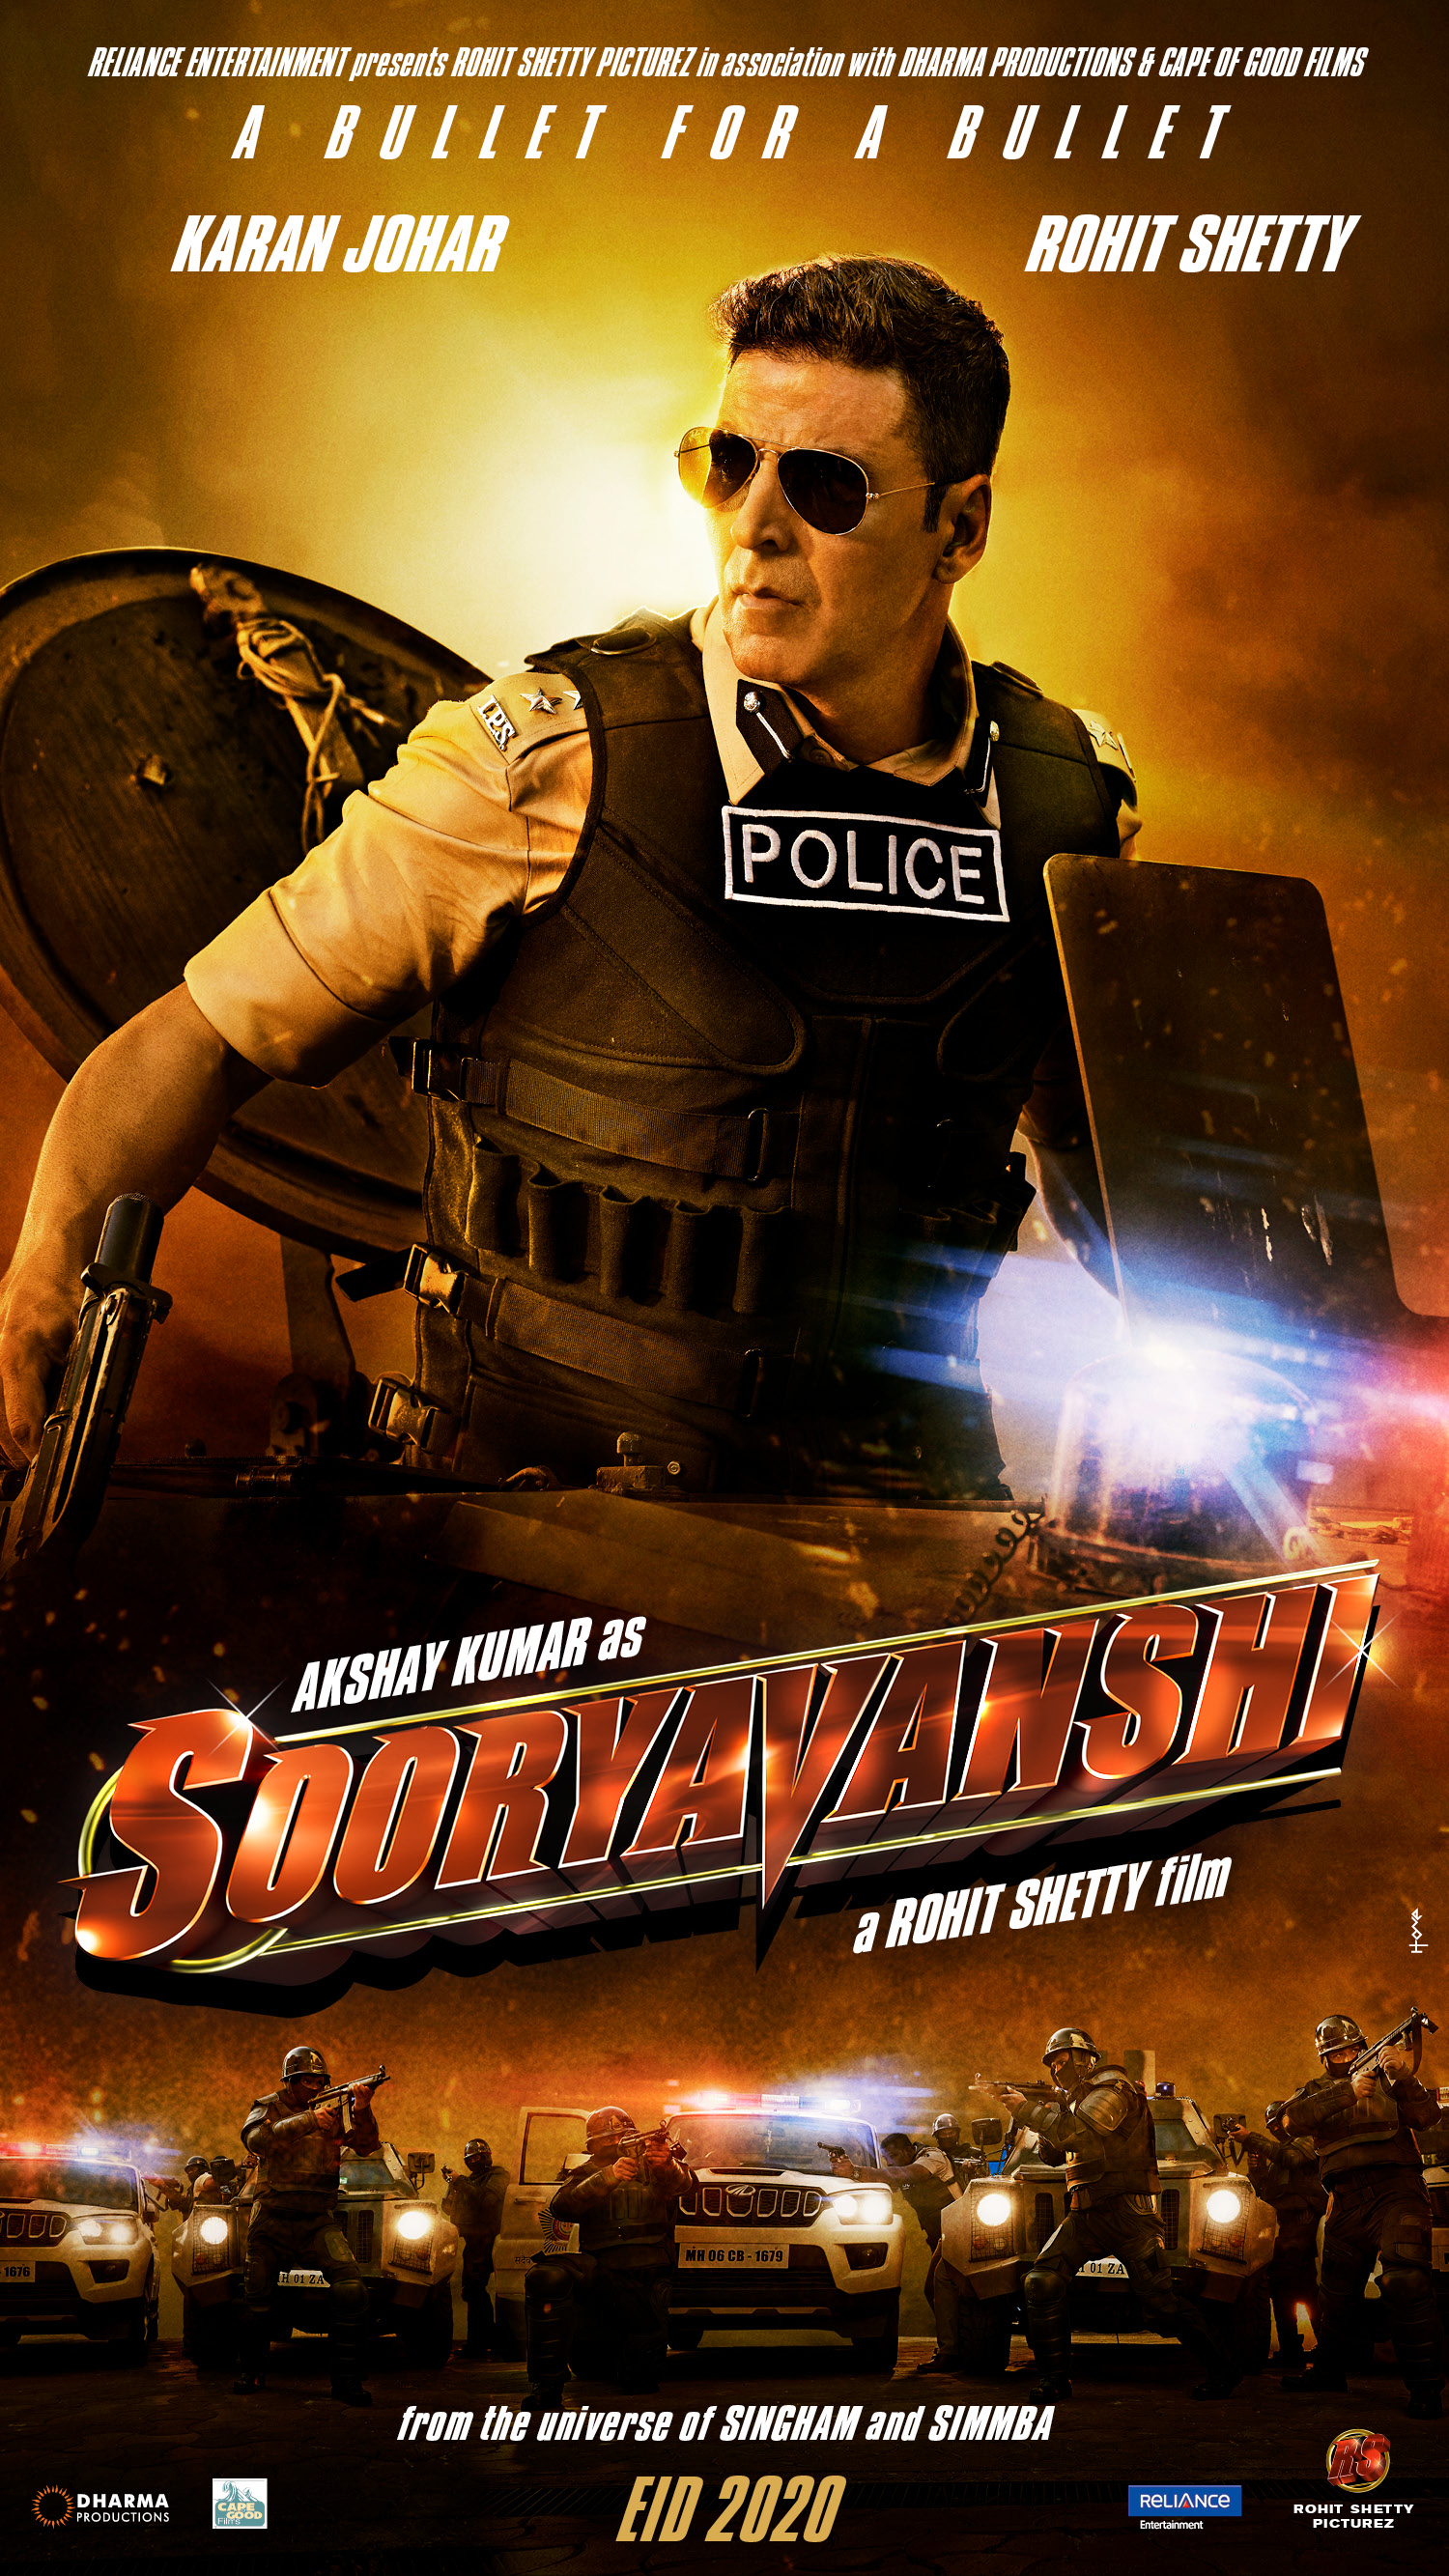 Hindi movies picture download south 2020 hd